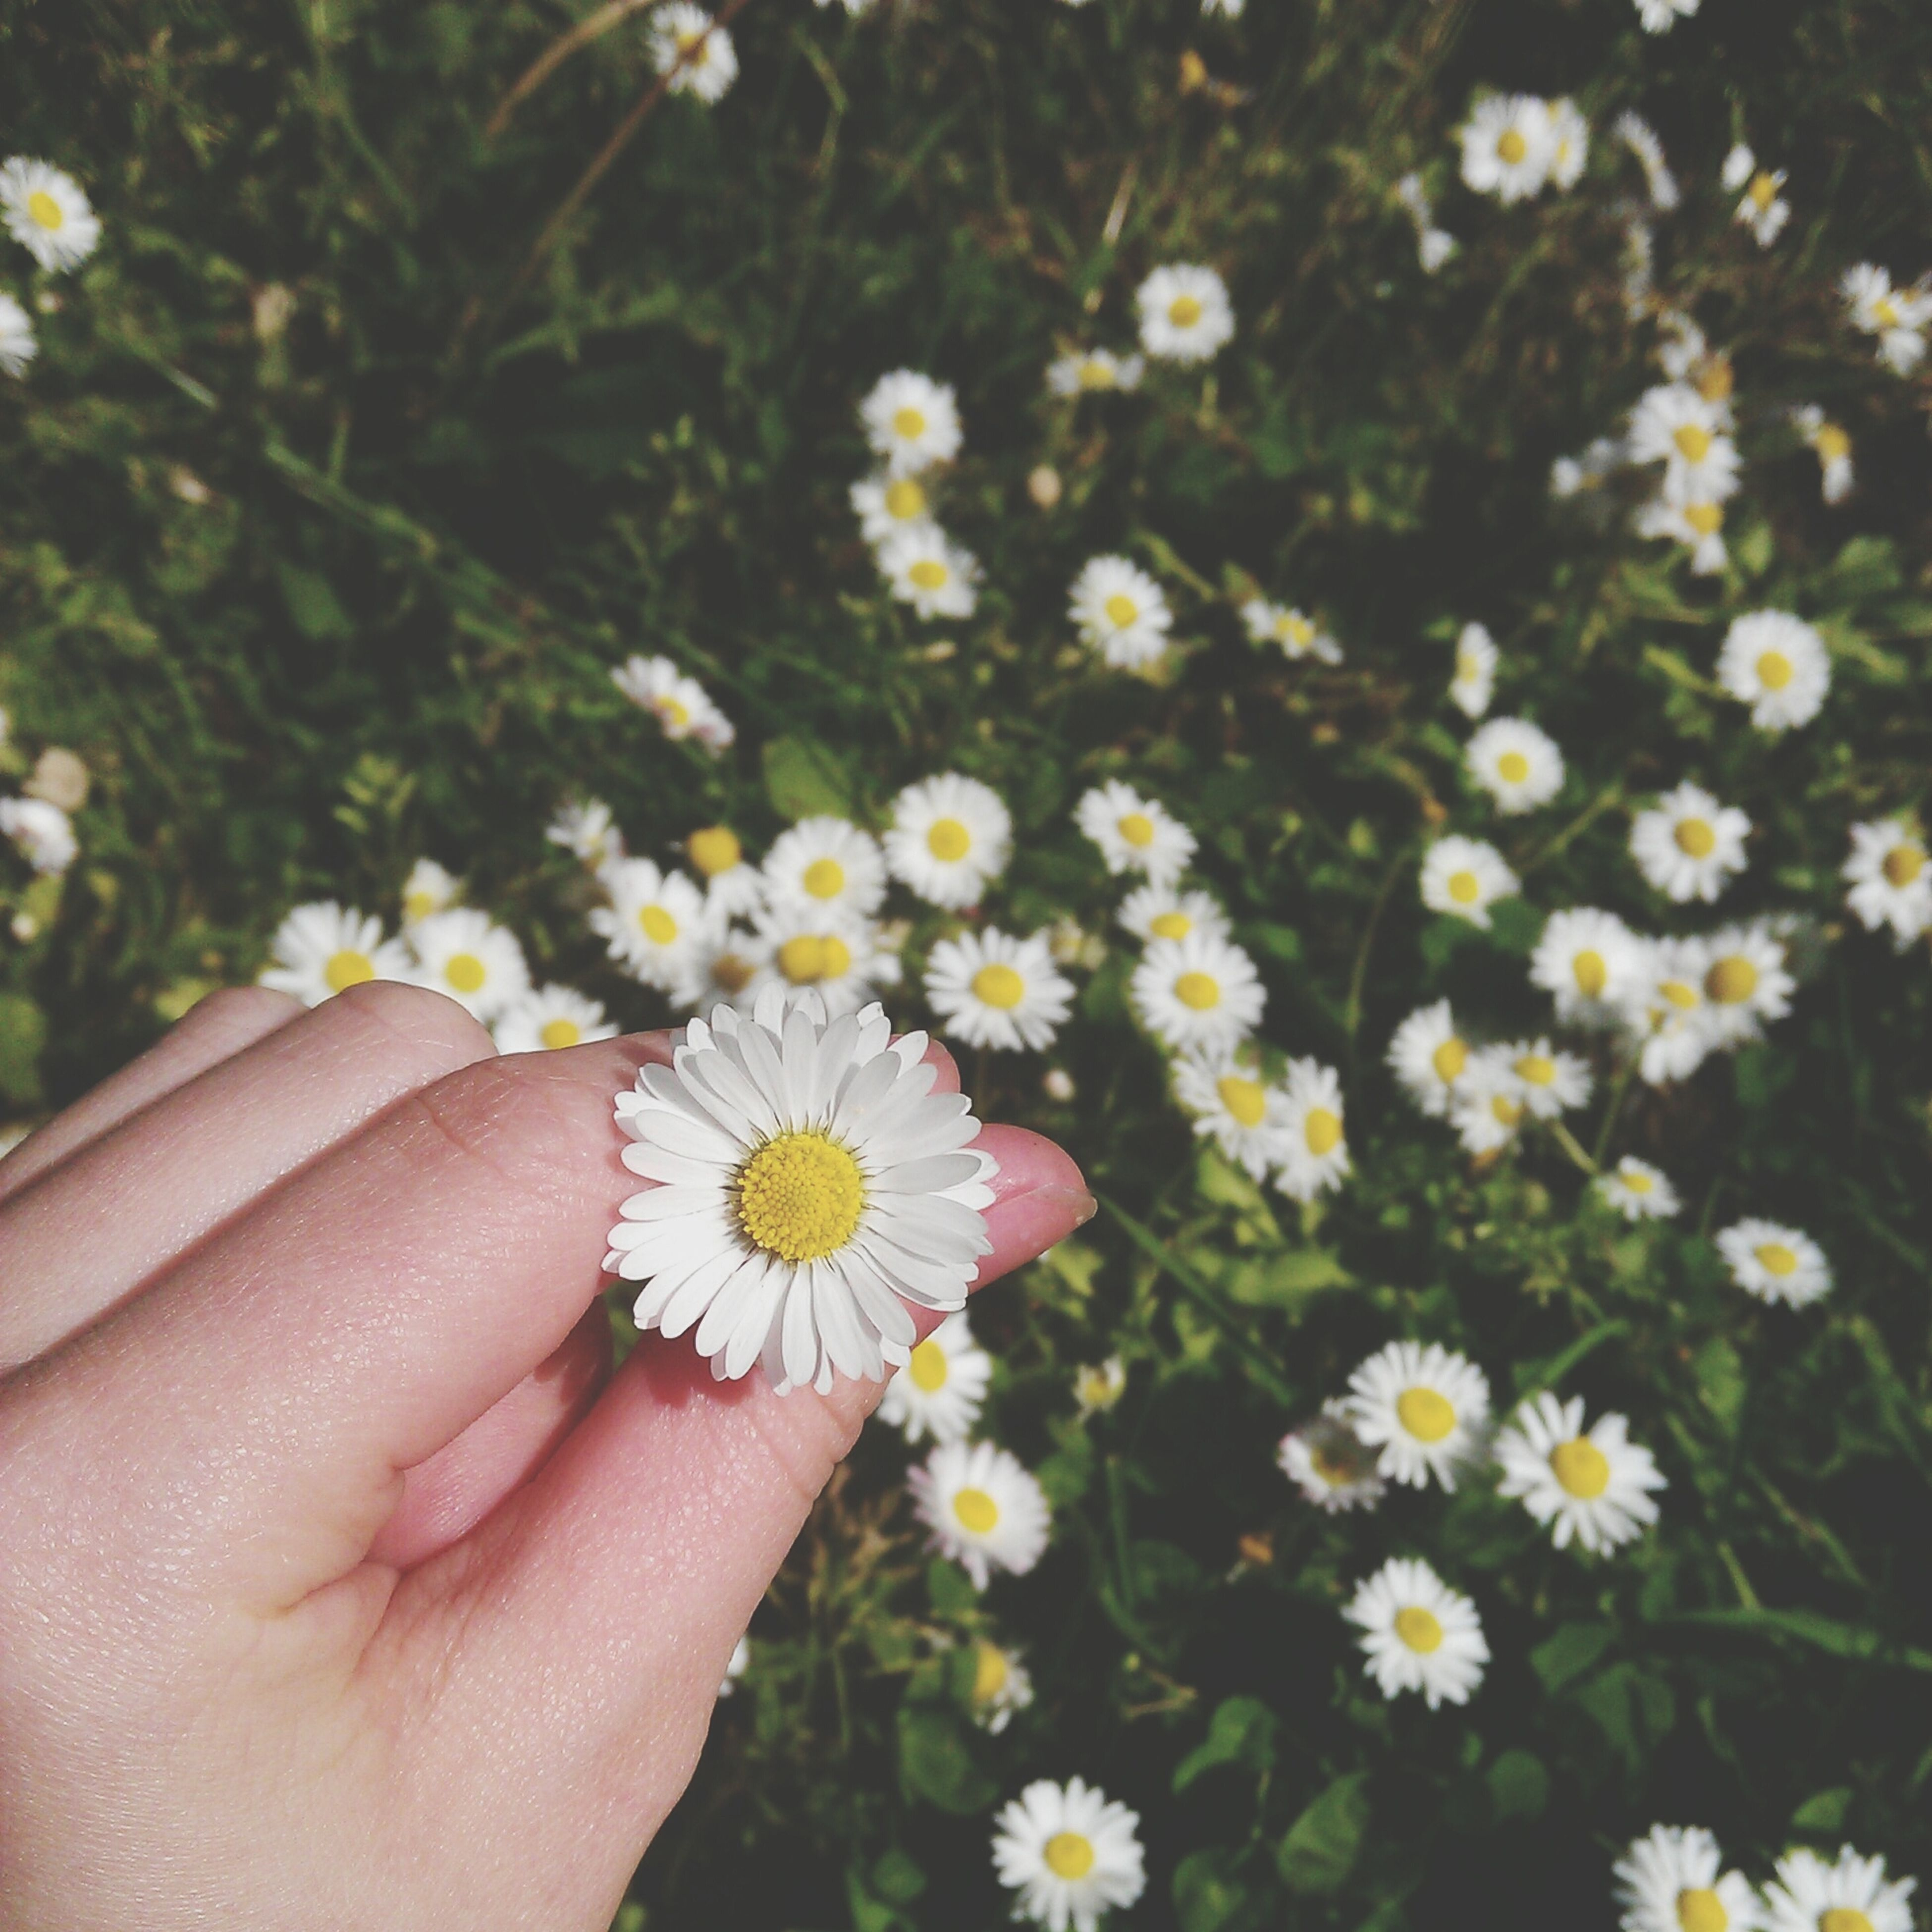 person, flower, holding, freshness, fragility, part of, flower head, petal, personal perspective, daisy, human finger, cropped, unrecognizable person, white color, focus on foreground, pollen, beauty in nature